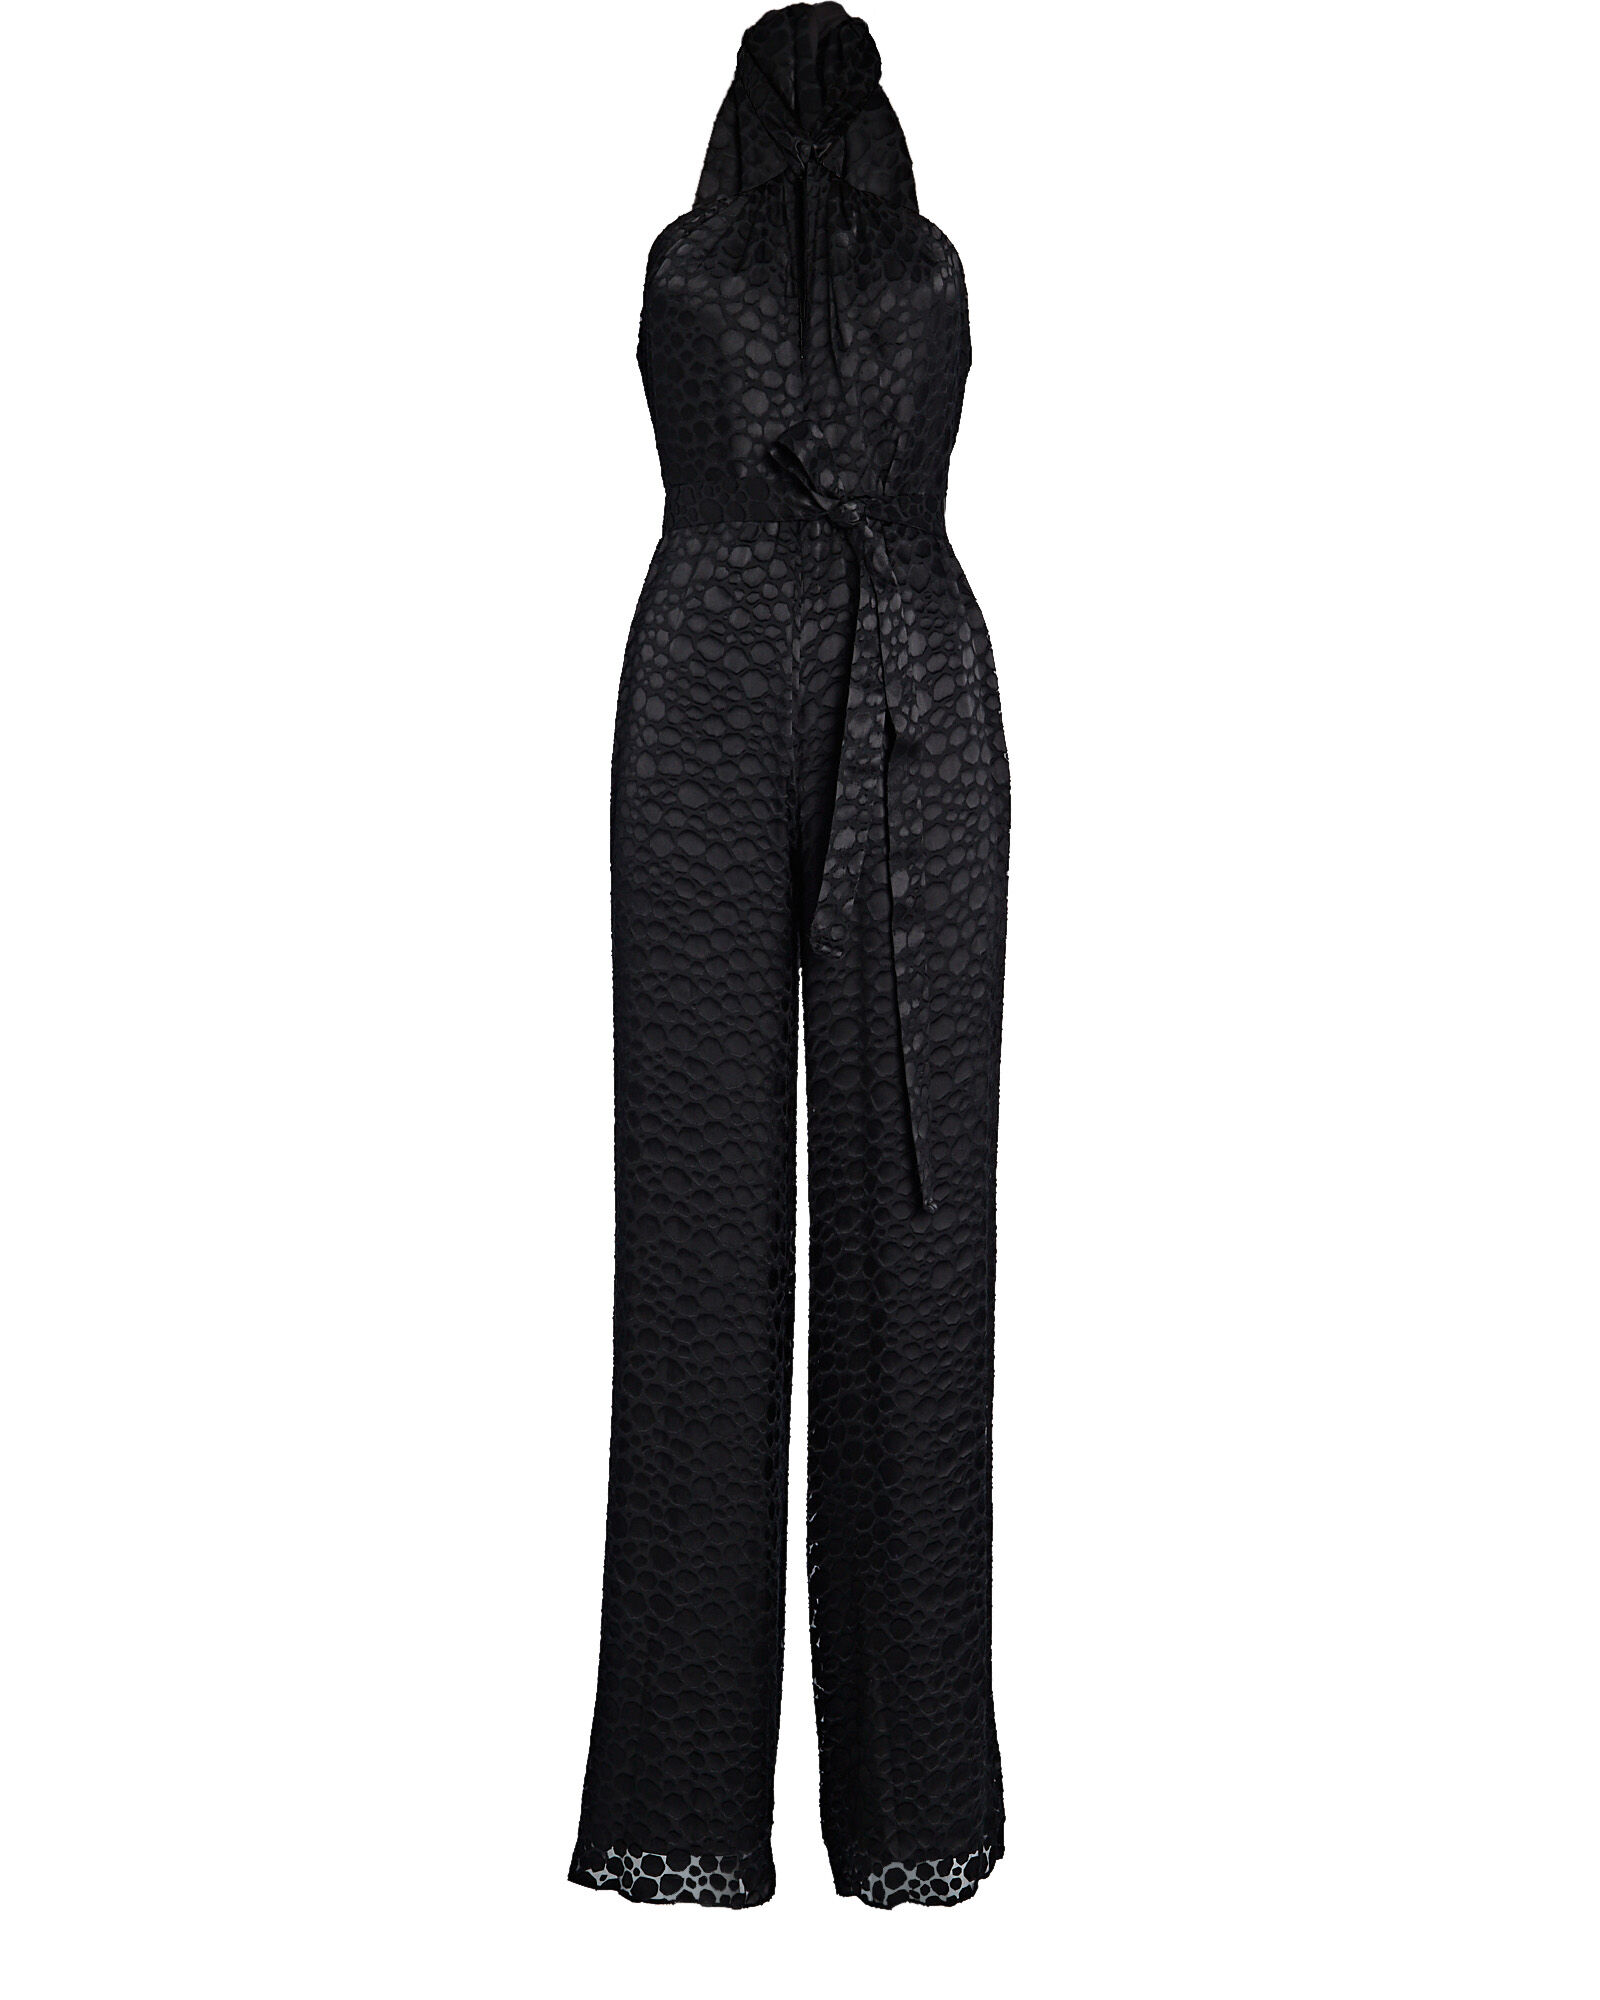 Paolina Burnout Jacquard Jumpsuit, BLACK, hi-res